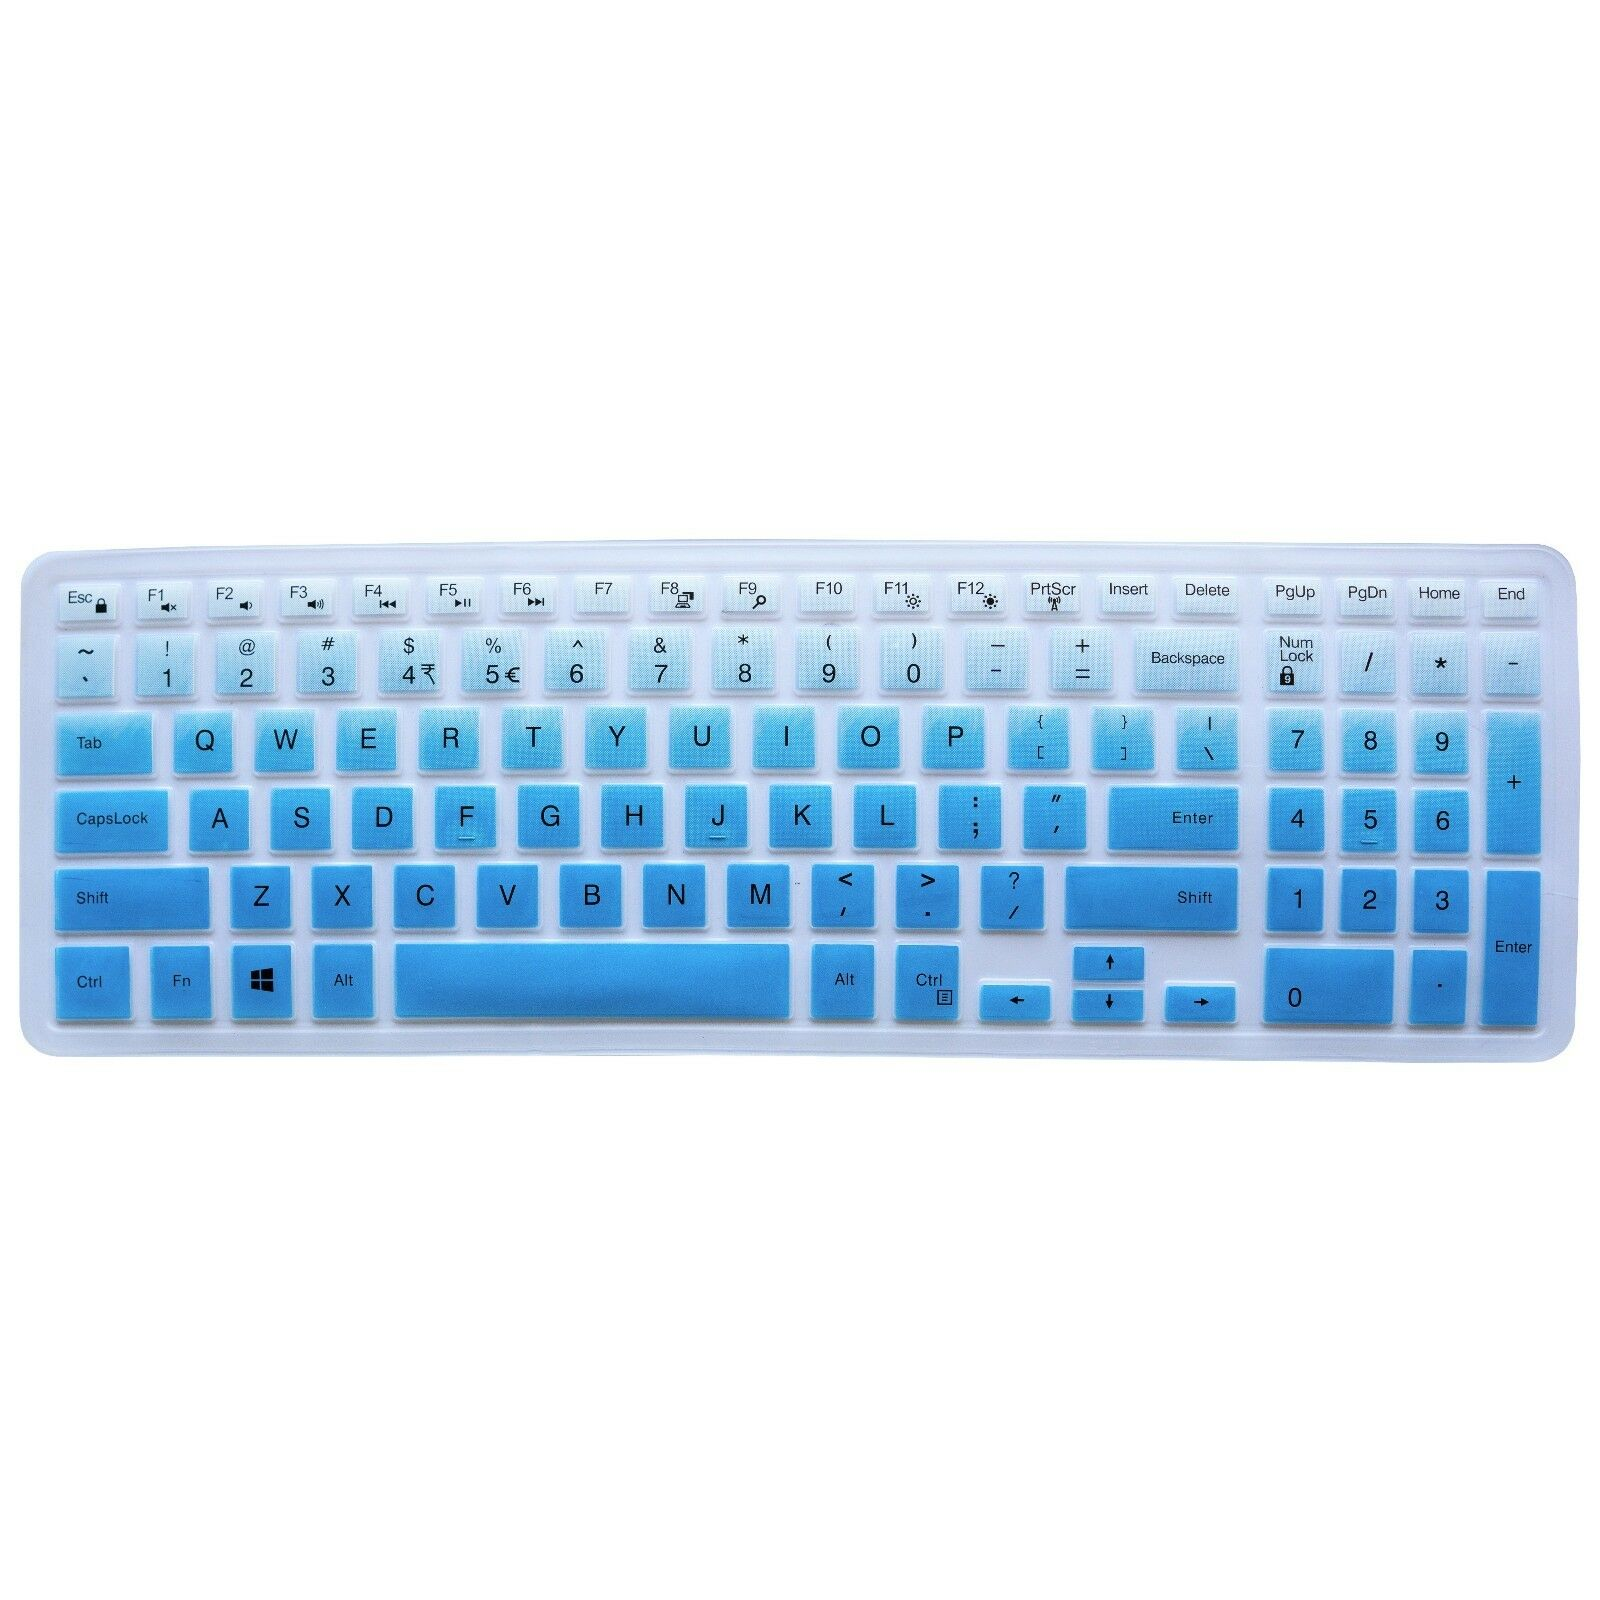 Keyboard Protector Skin Cover Dell Inspiron 15 3000 5000 7000 17 3576 1 Of 2free Shipping